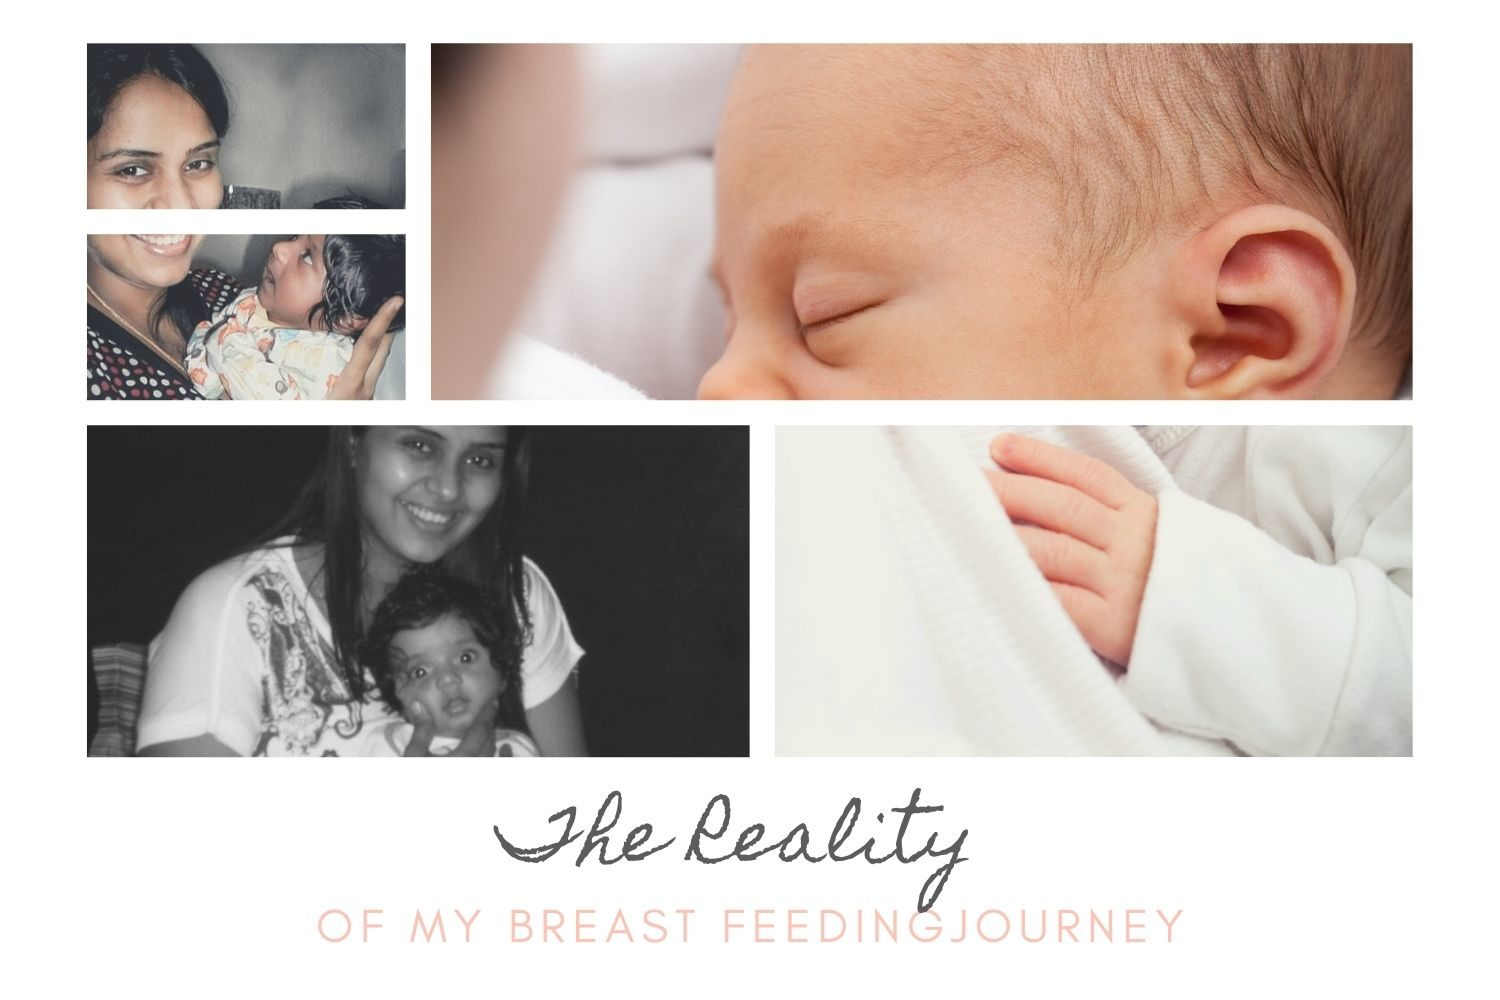 The Reality of My Breastfeeding Journey